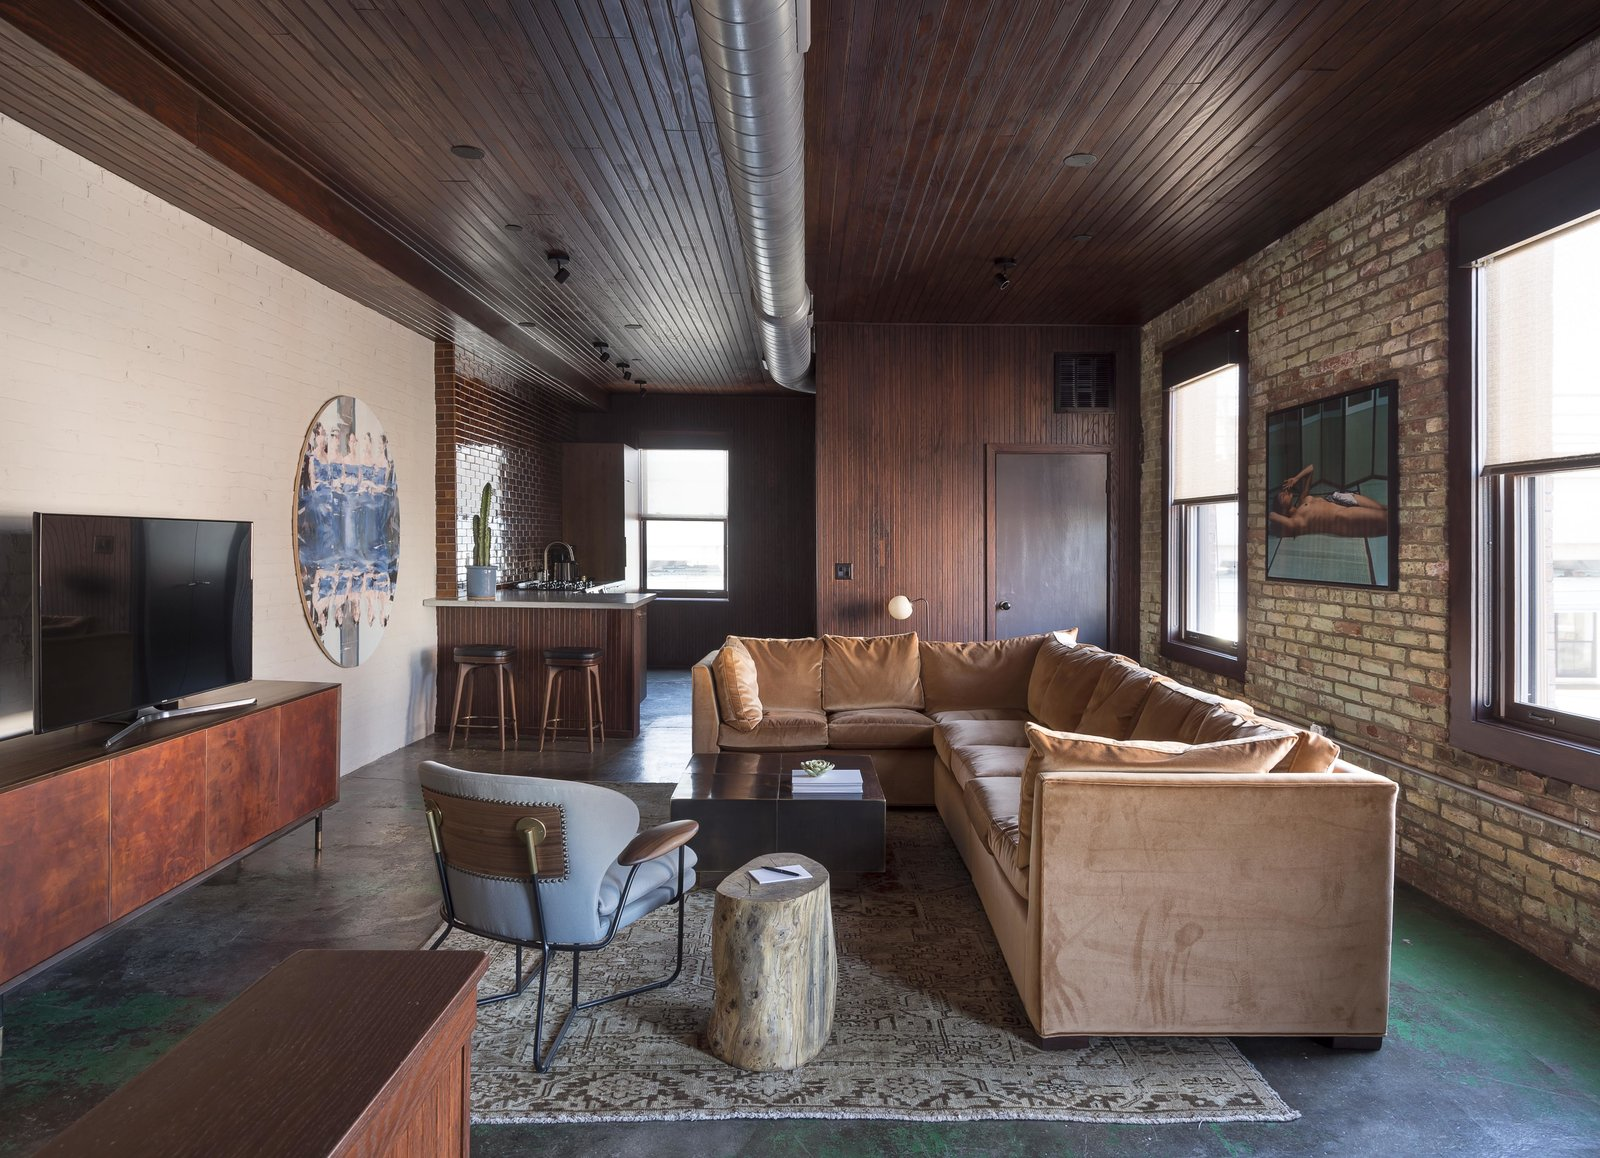 Living Room, Coffee Tables, Sectional, Chair, Ceiling Lighting, Concrete Floor, Media Cabinet, Sofa, Stools, and Storage  Mulherin's Hotel